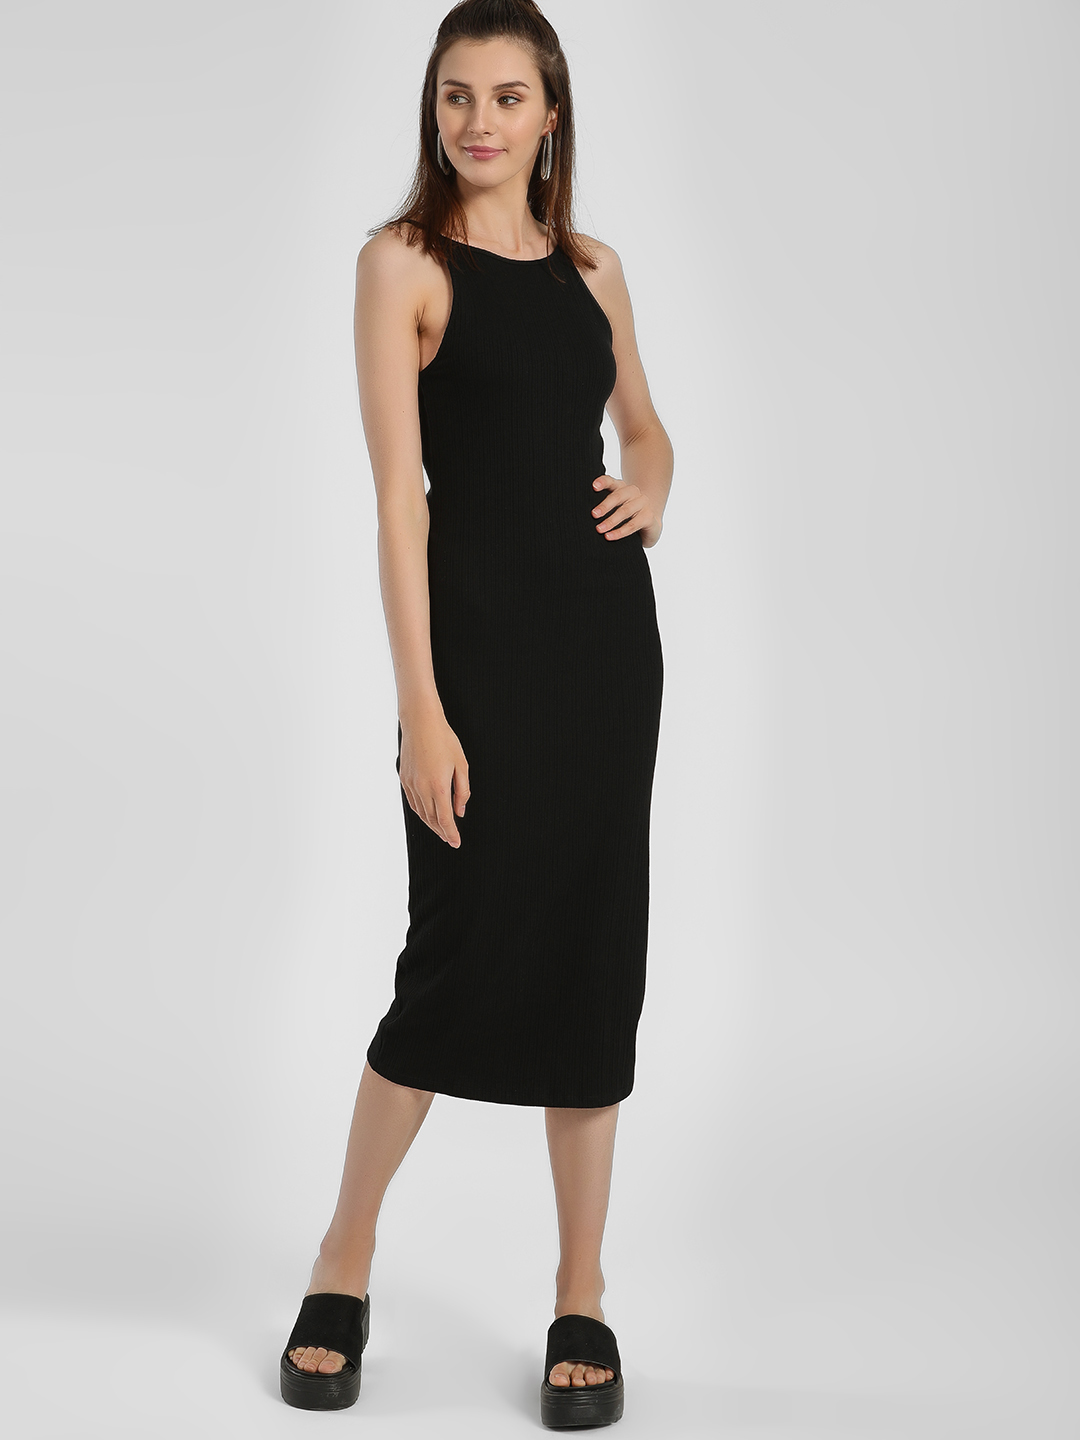 New Look Black Ribbed Strappy Bodycon Dress 1